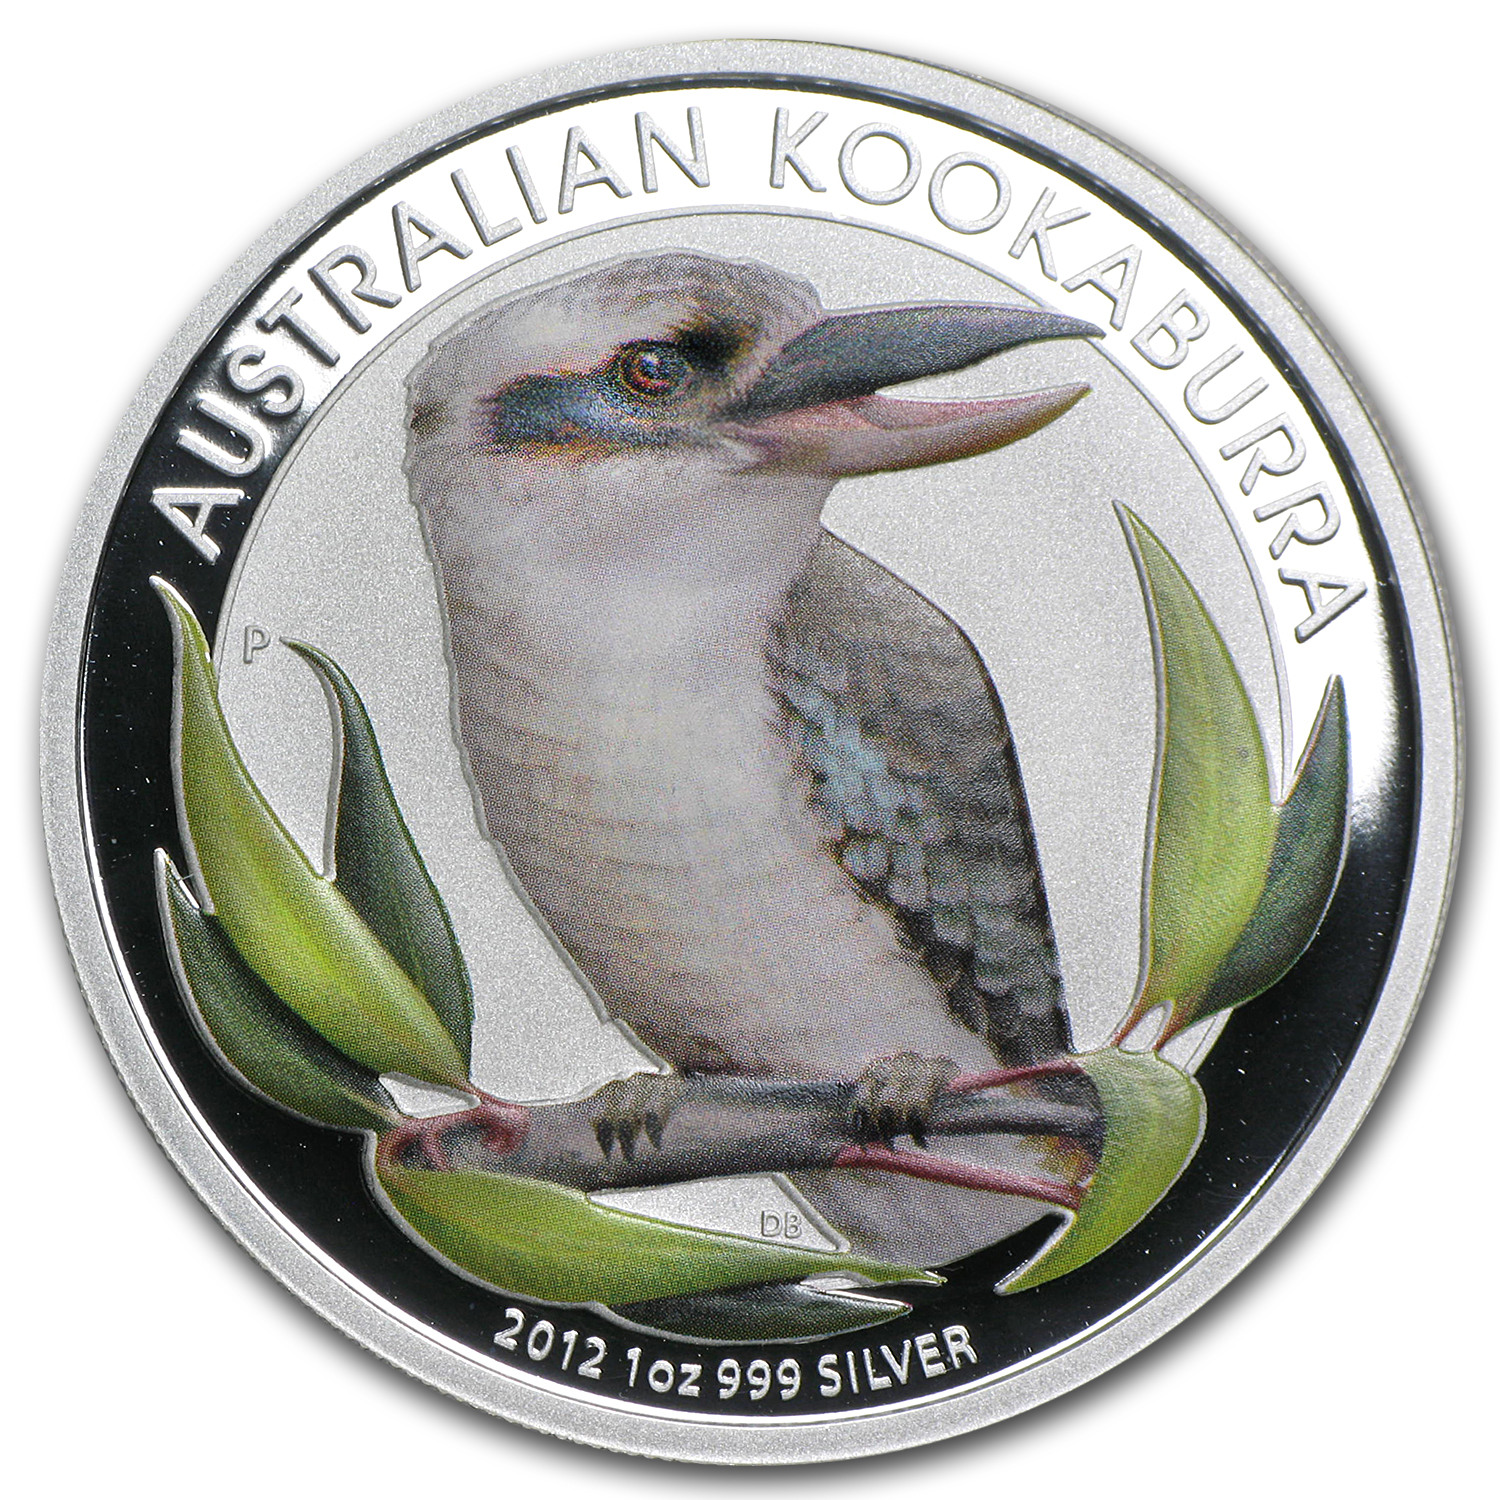 2012 Australia 1 oz Silver Kookaburra (Colorized, In Capsule)